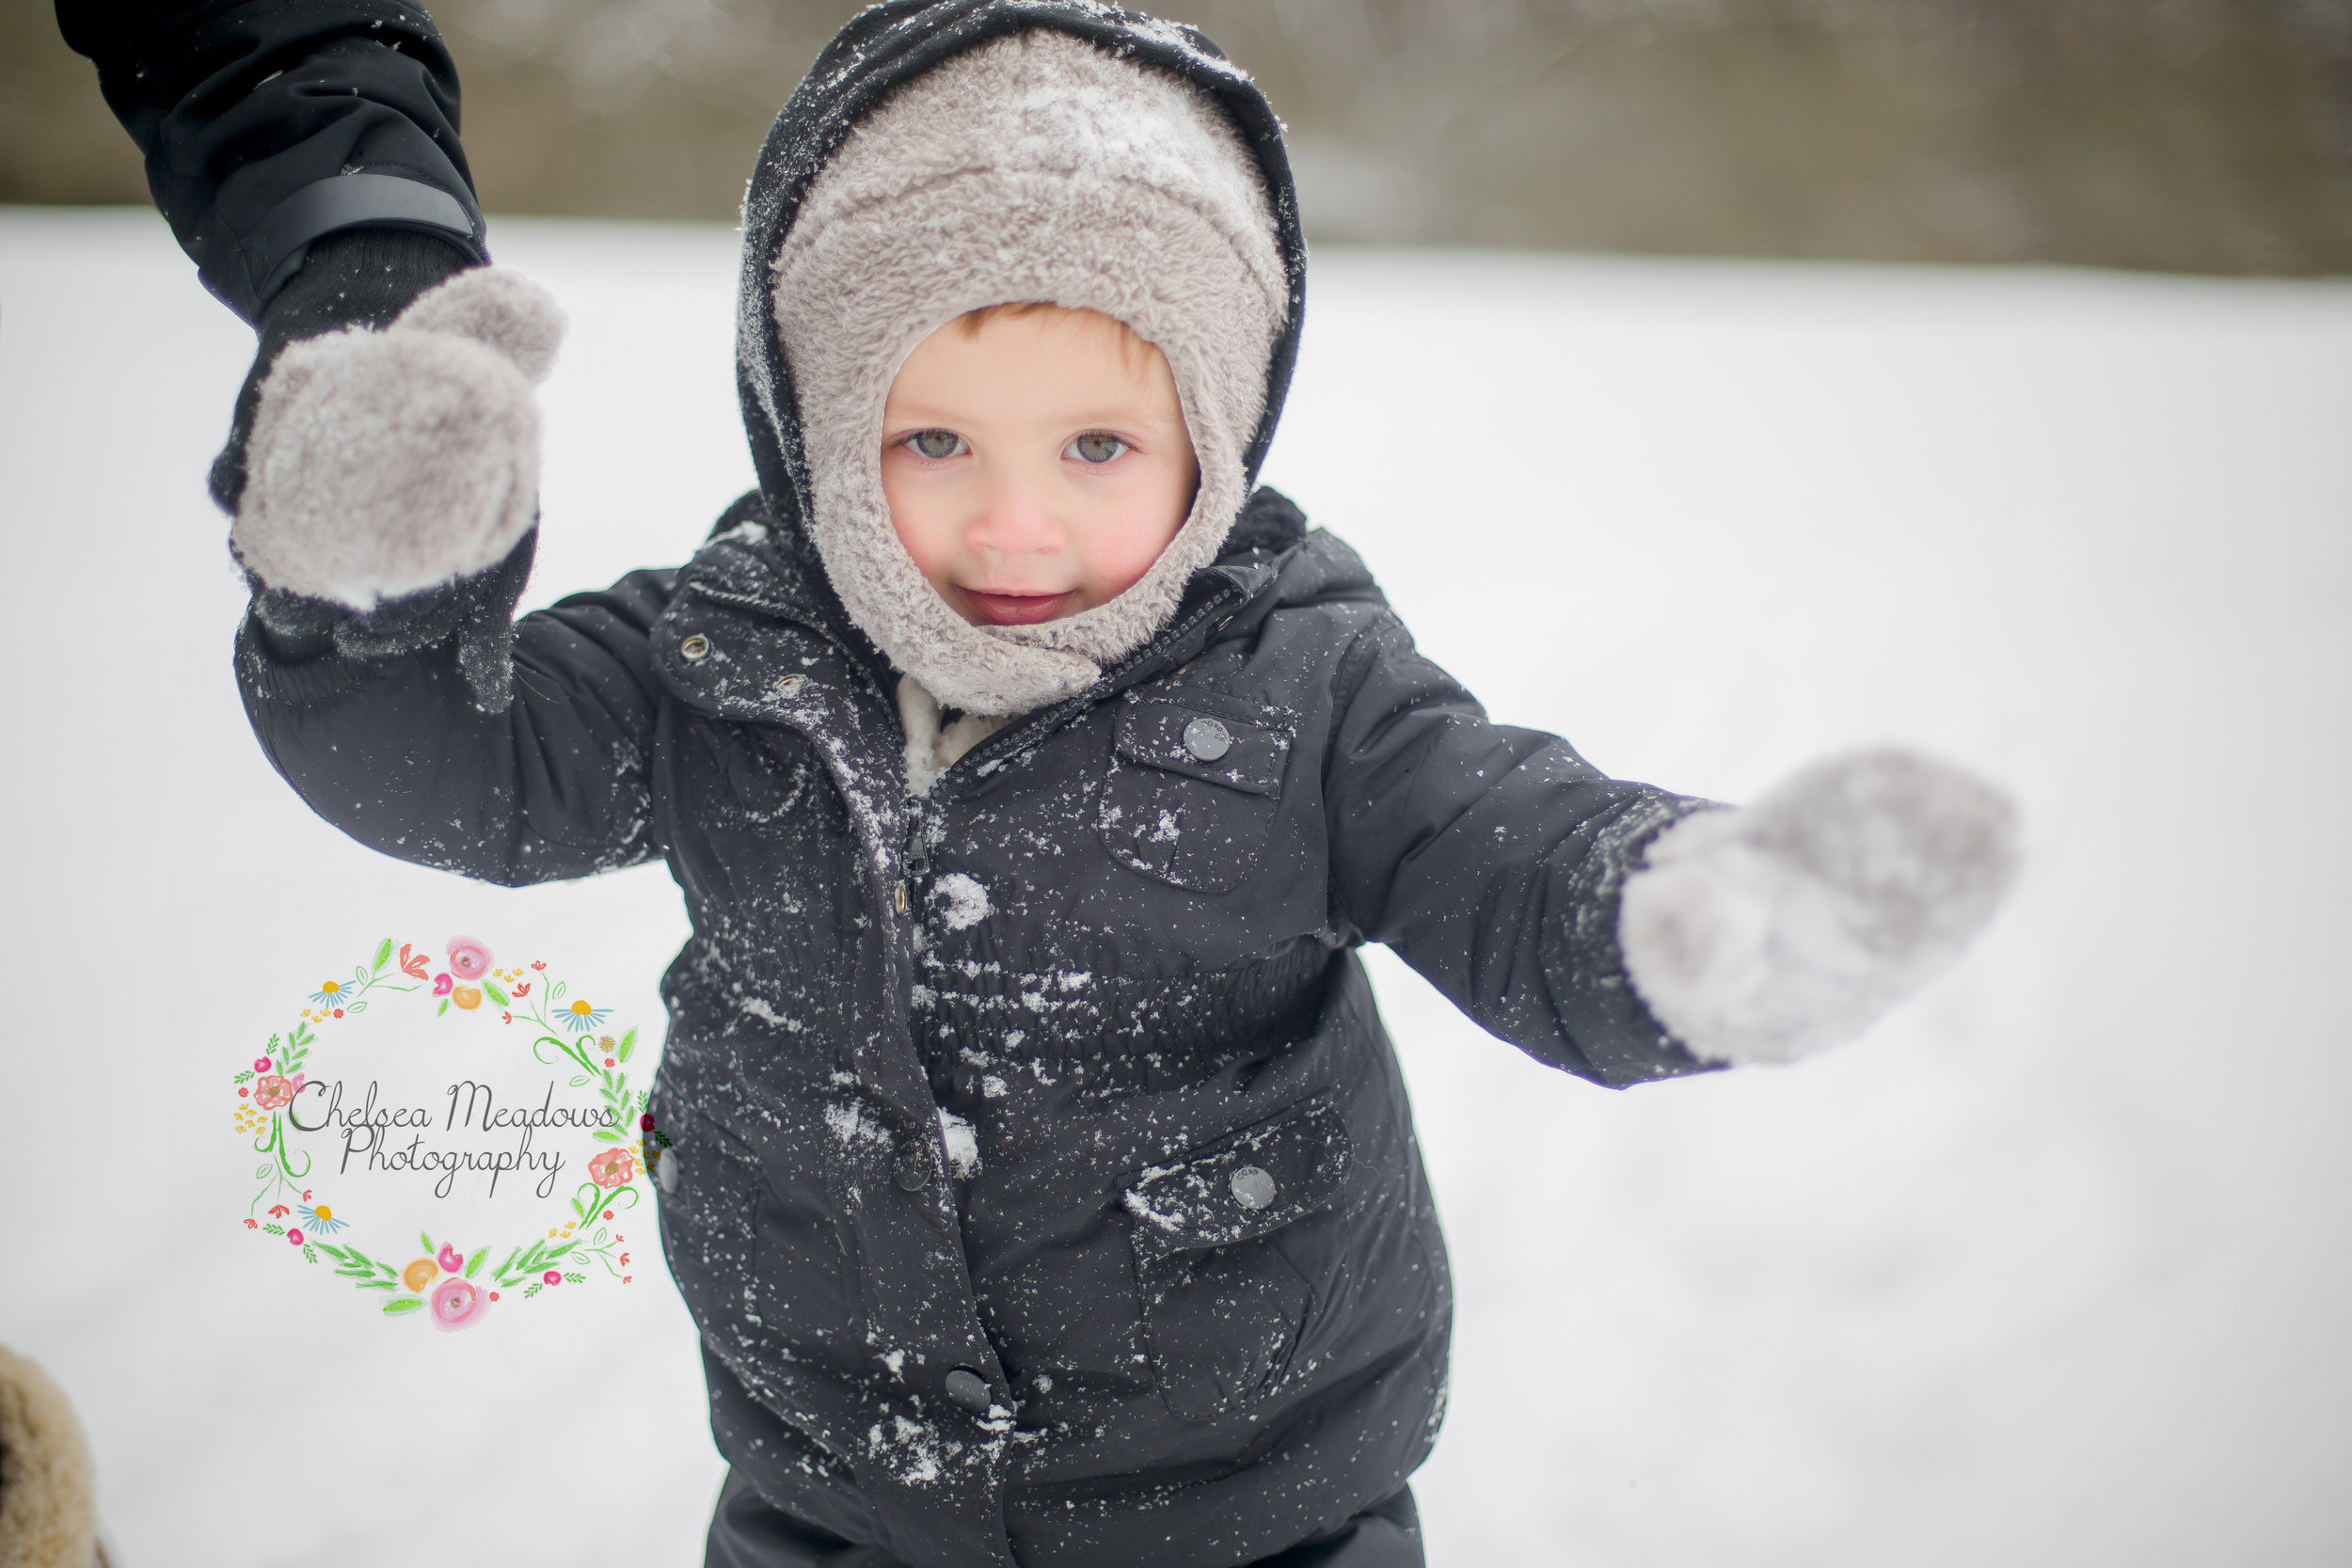 Ryder Snow Day 2018 - Nashville Family Photographer - Chelsea Meadows Photography (40).jpg